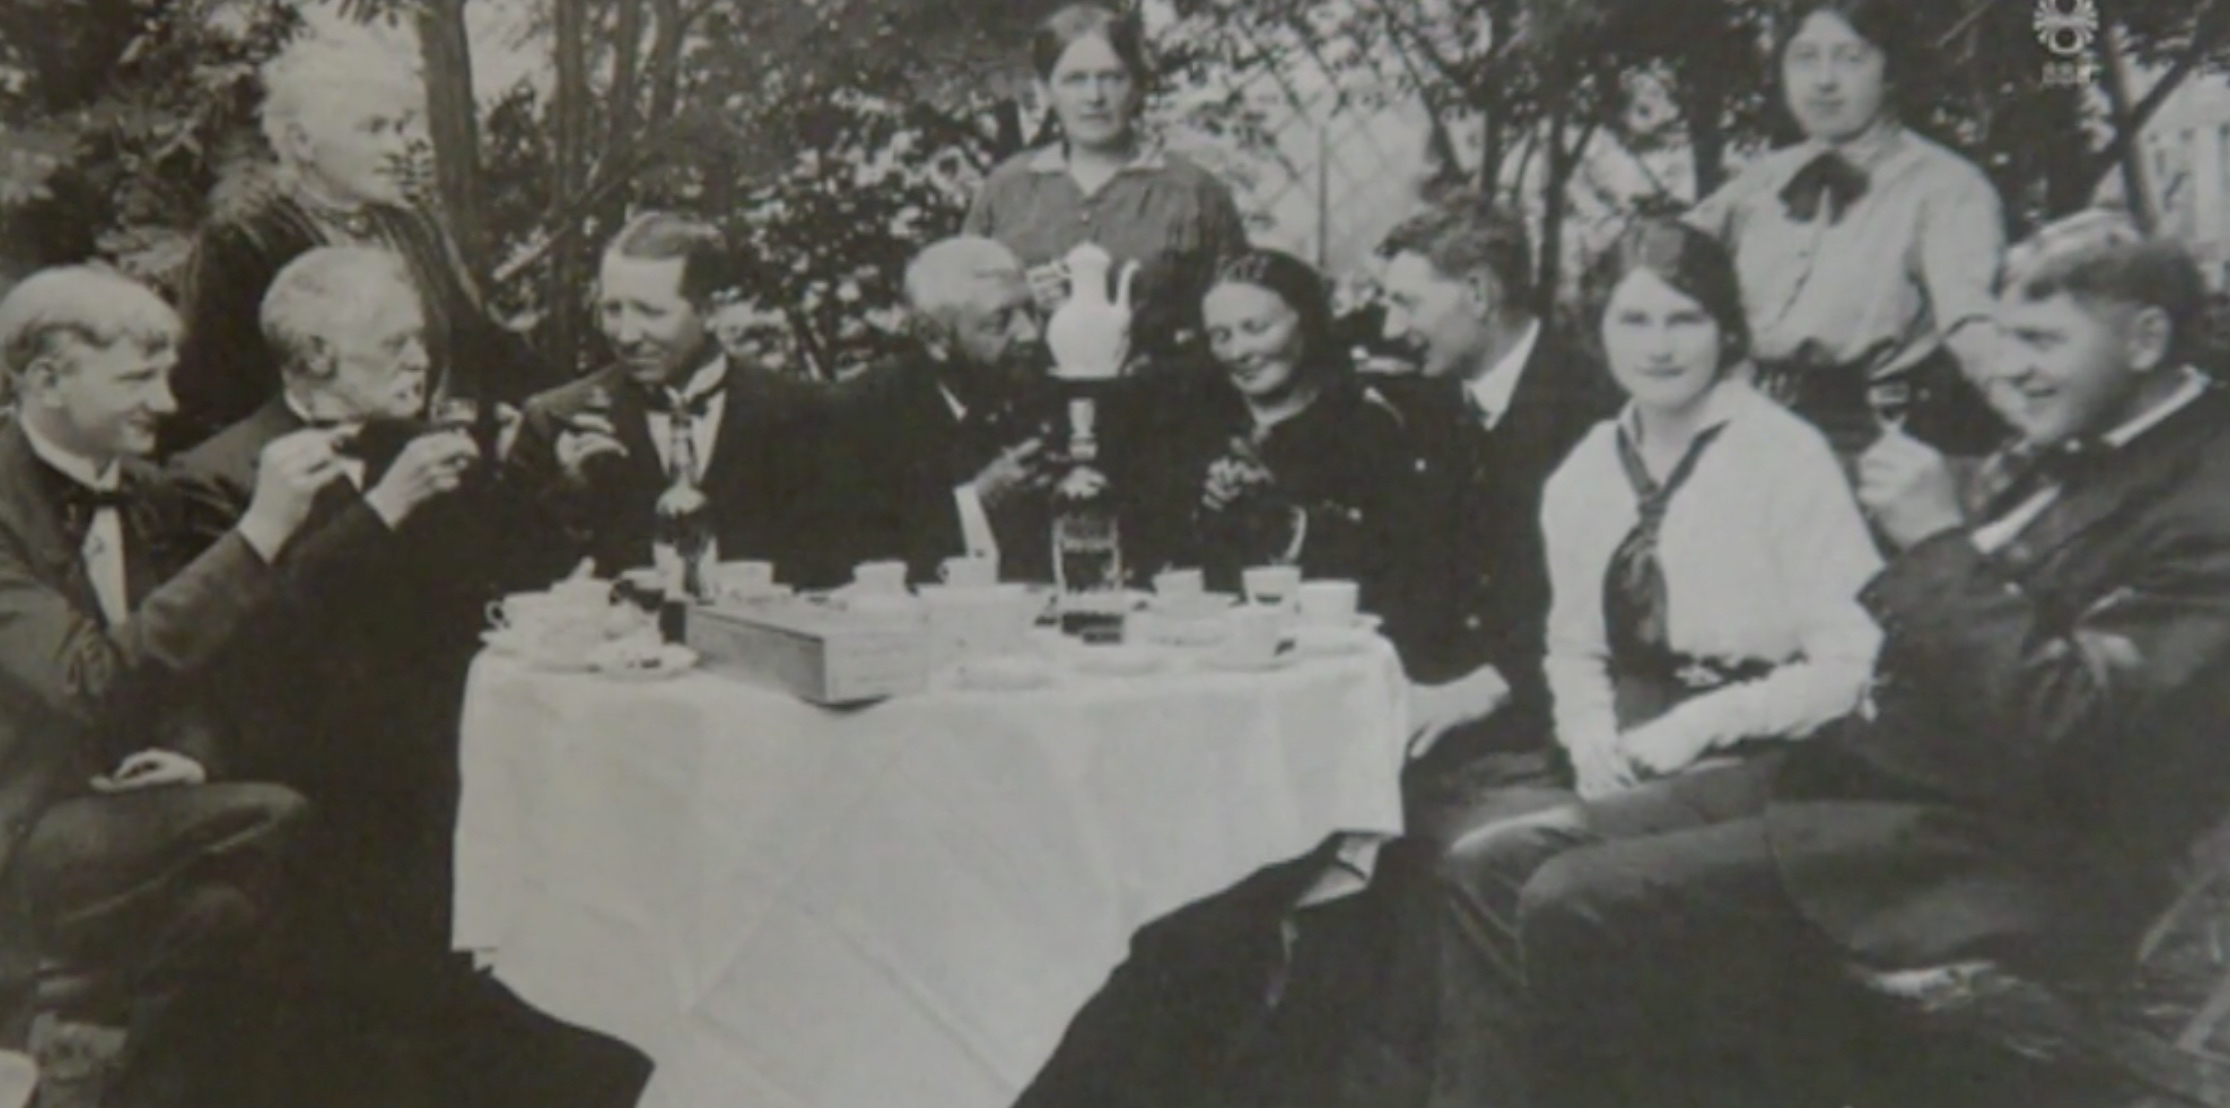 a garden party at the old pharmacy in the late 19th century